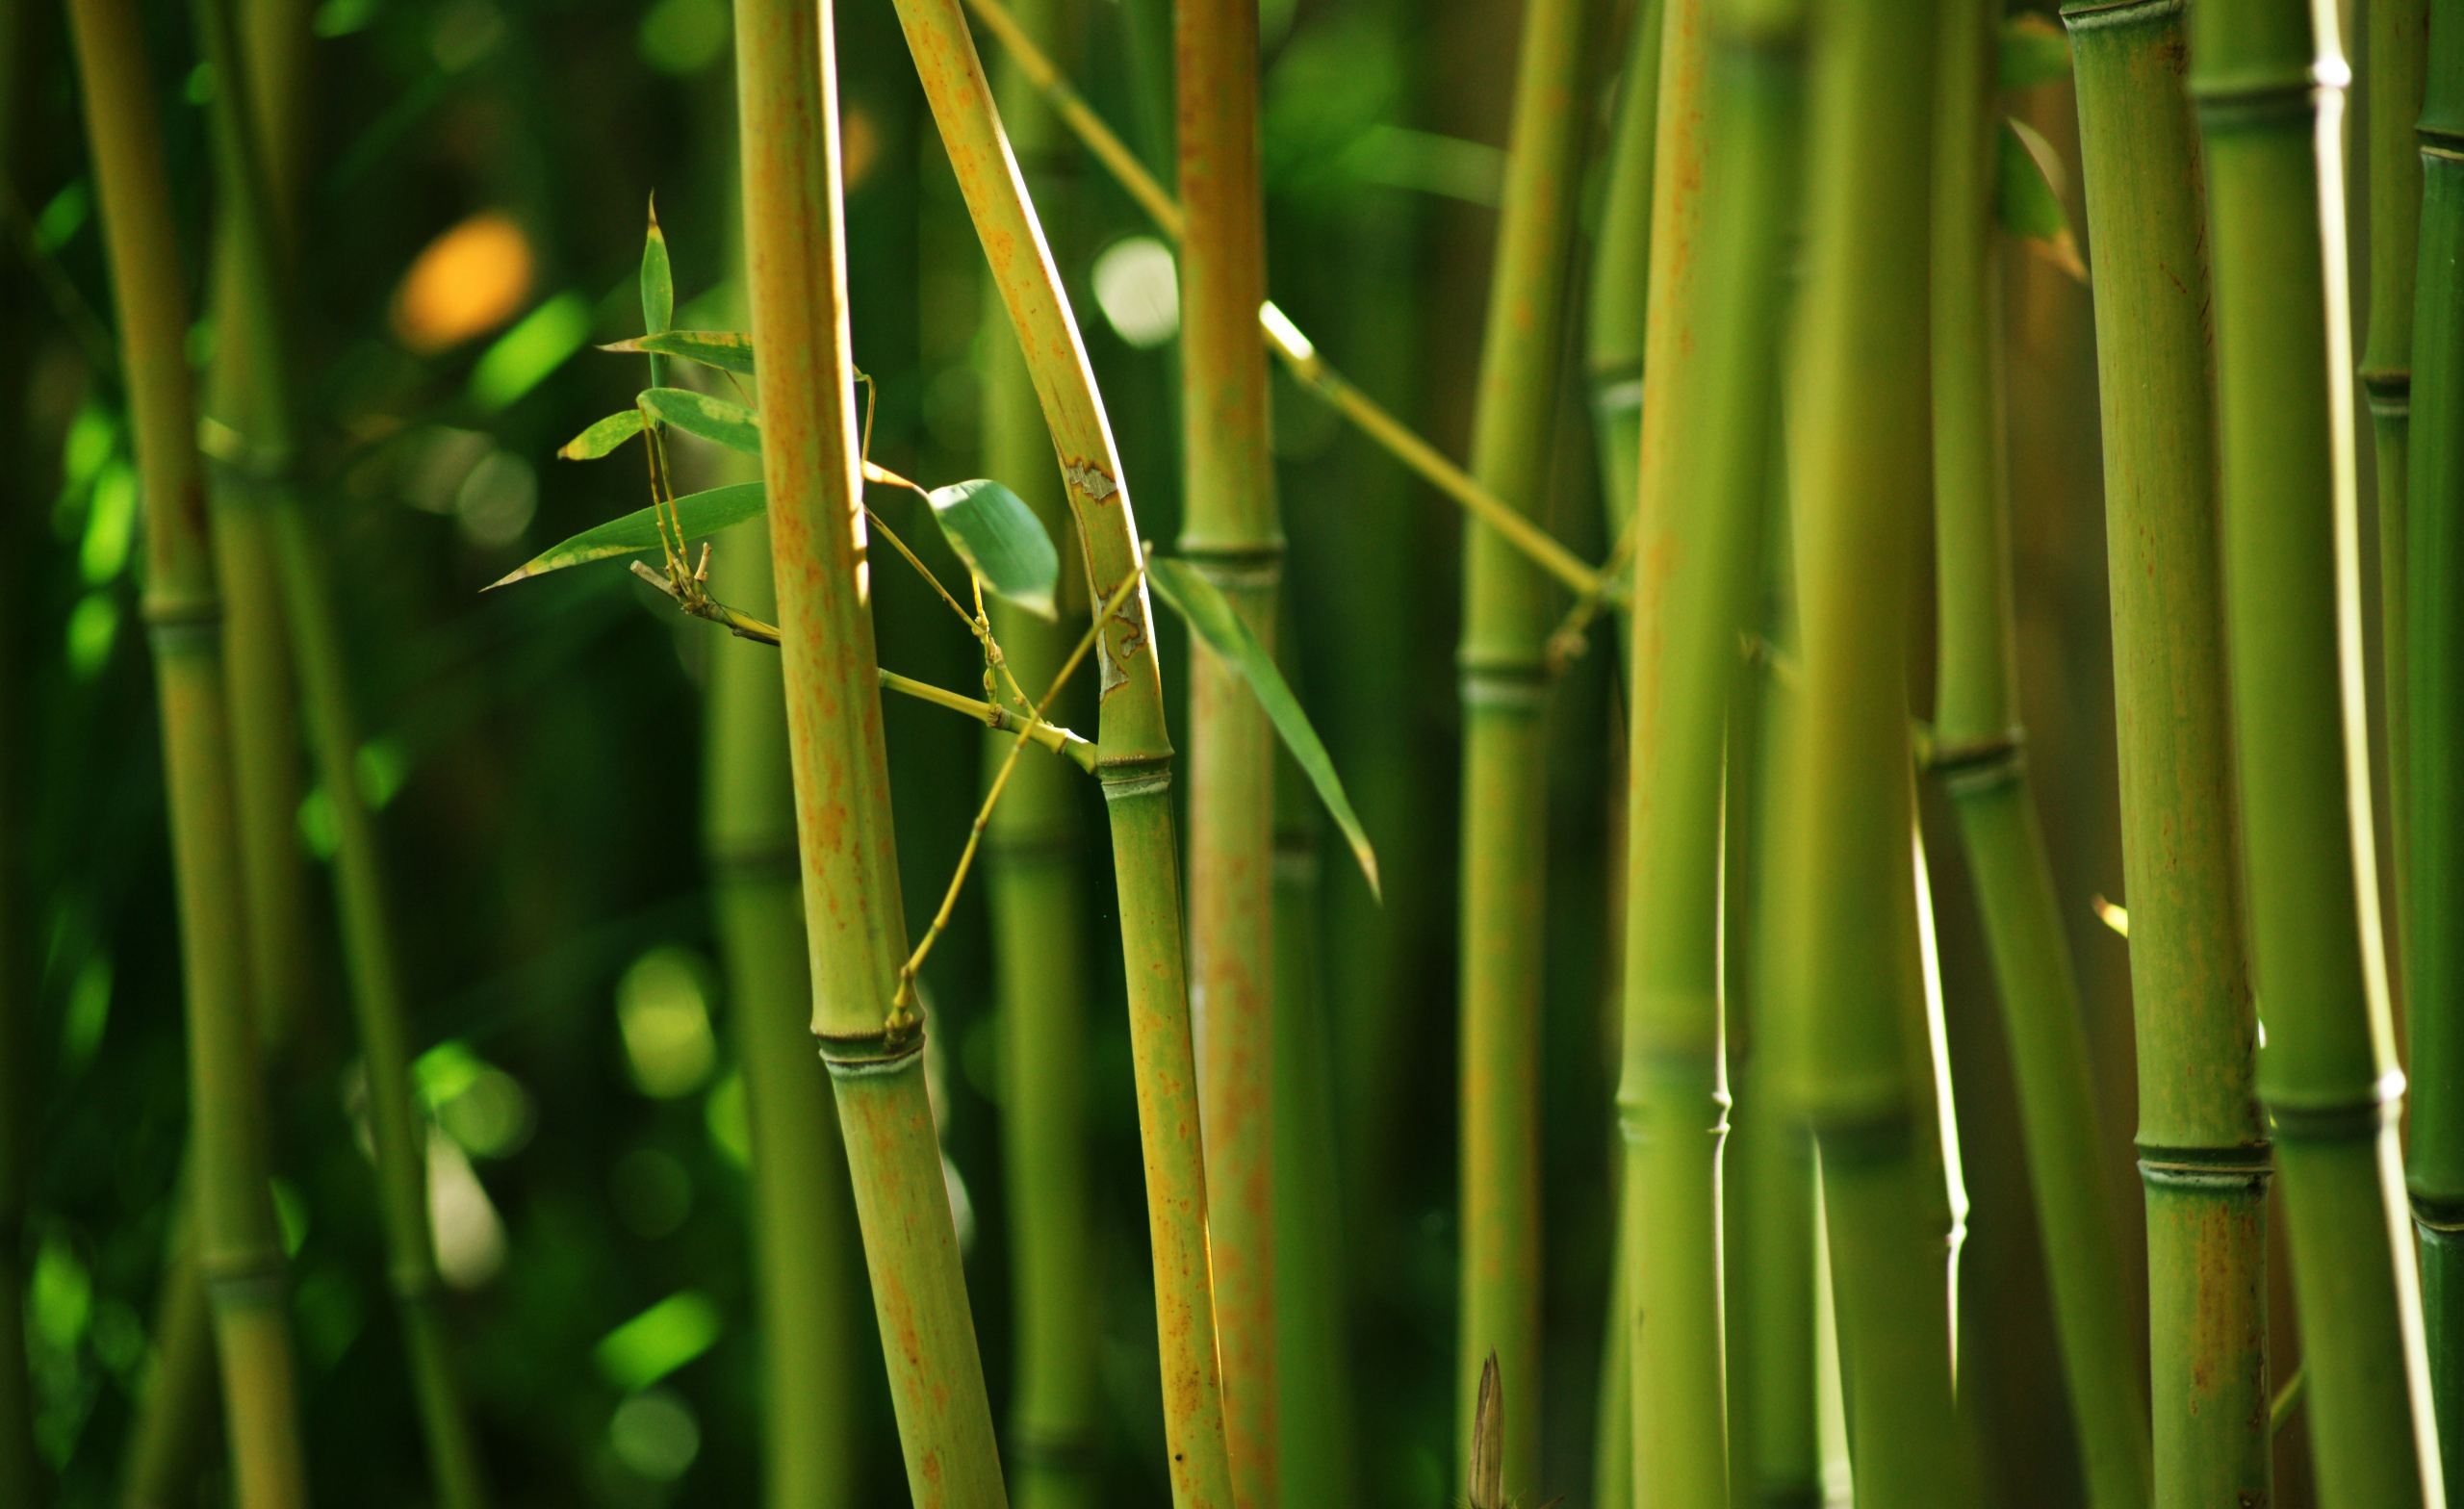 images-bamboo-wallpaper-hd | wallpaper.wiki